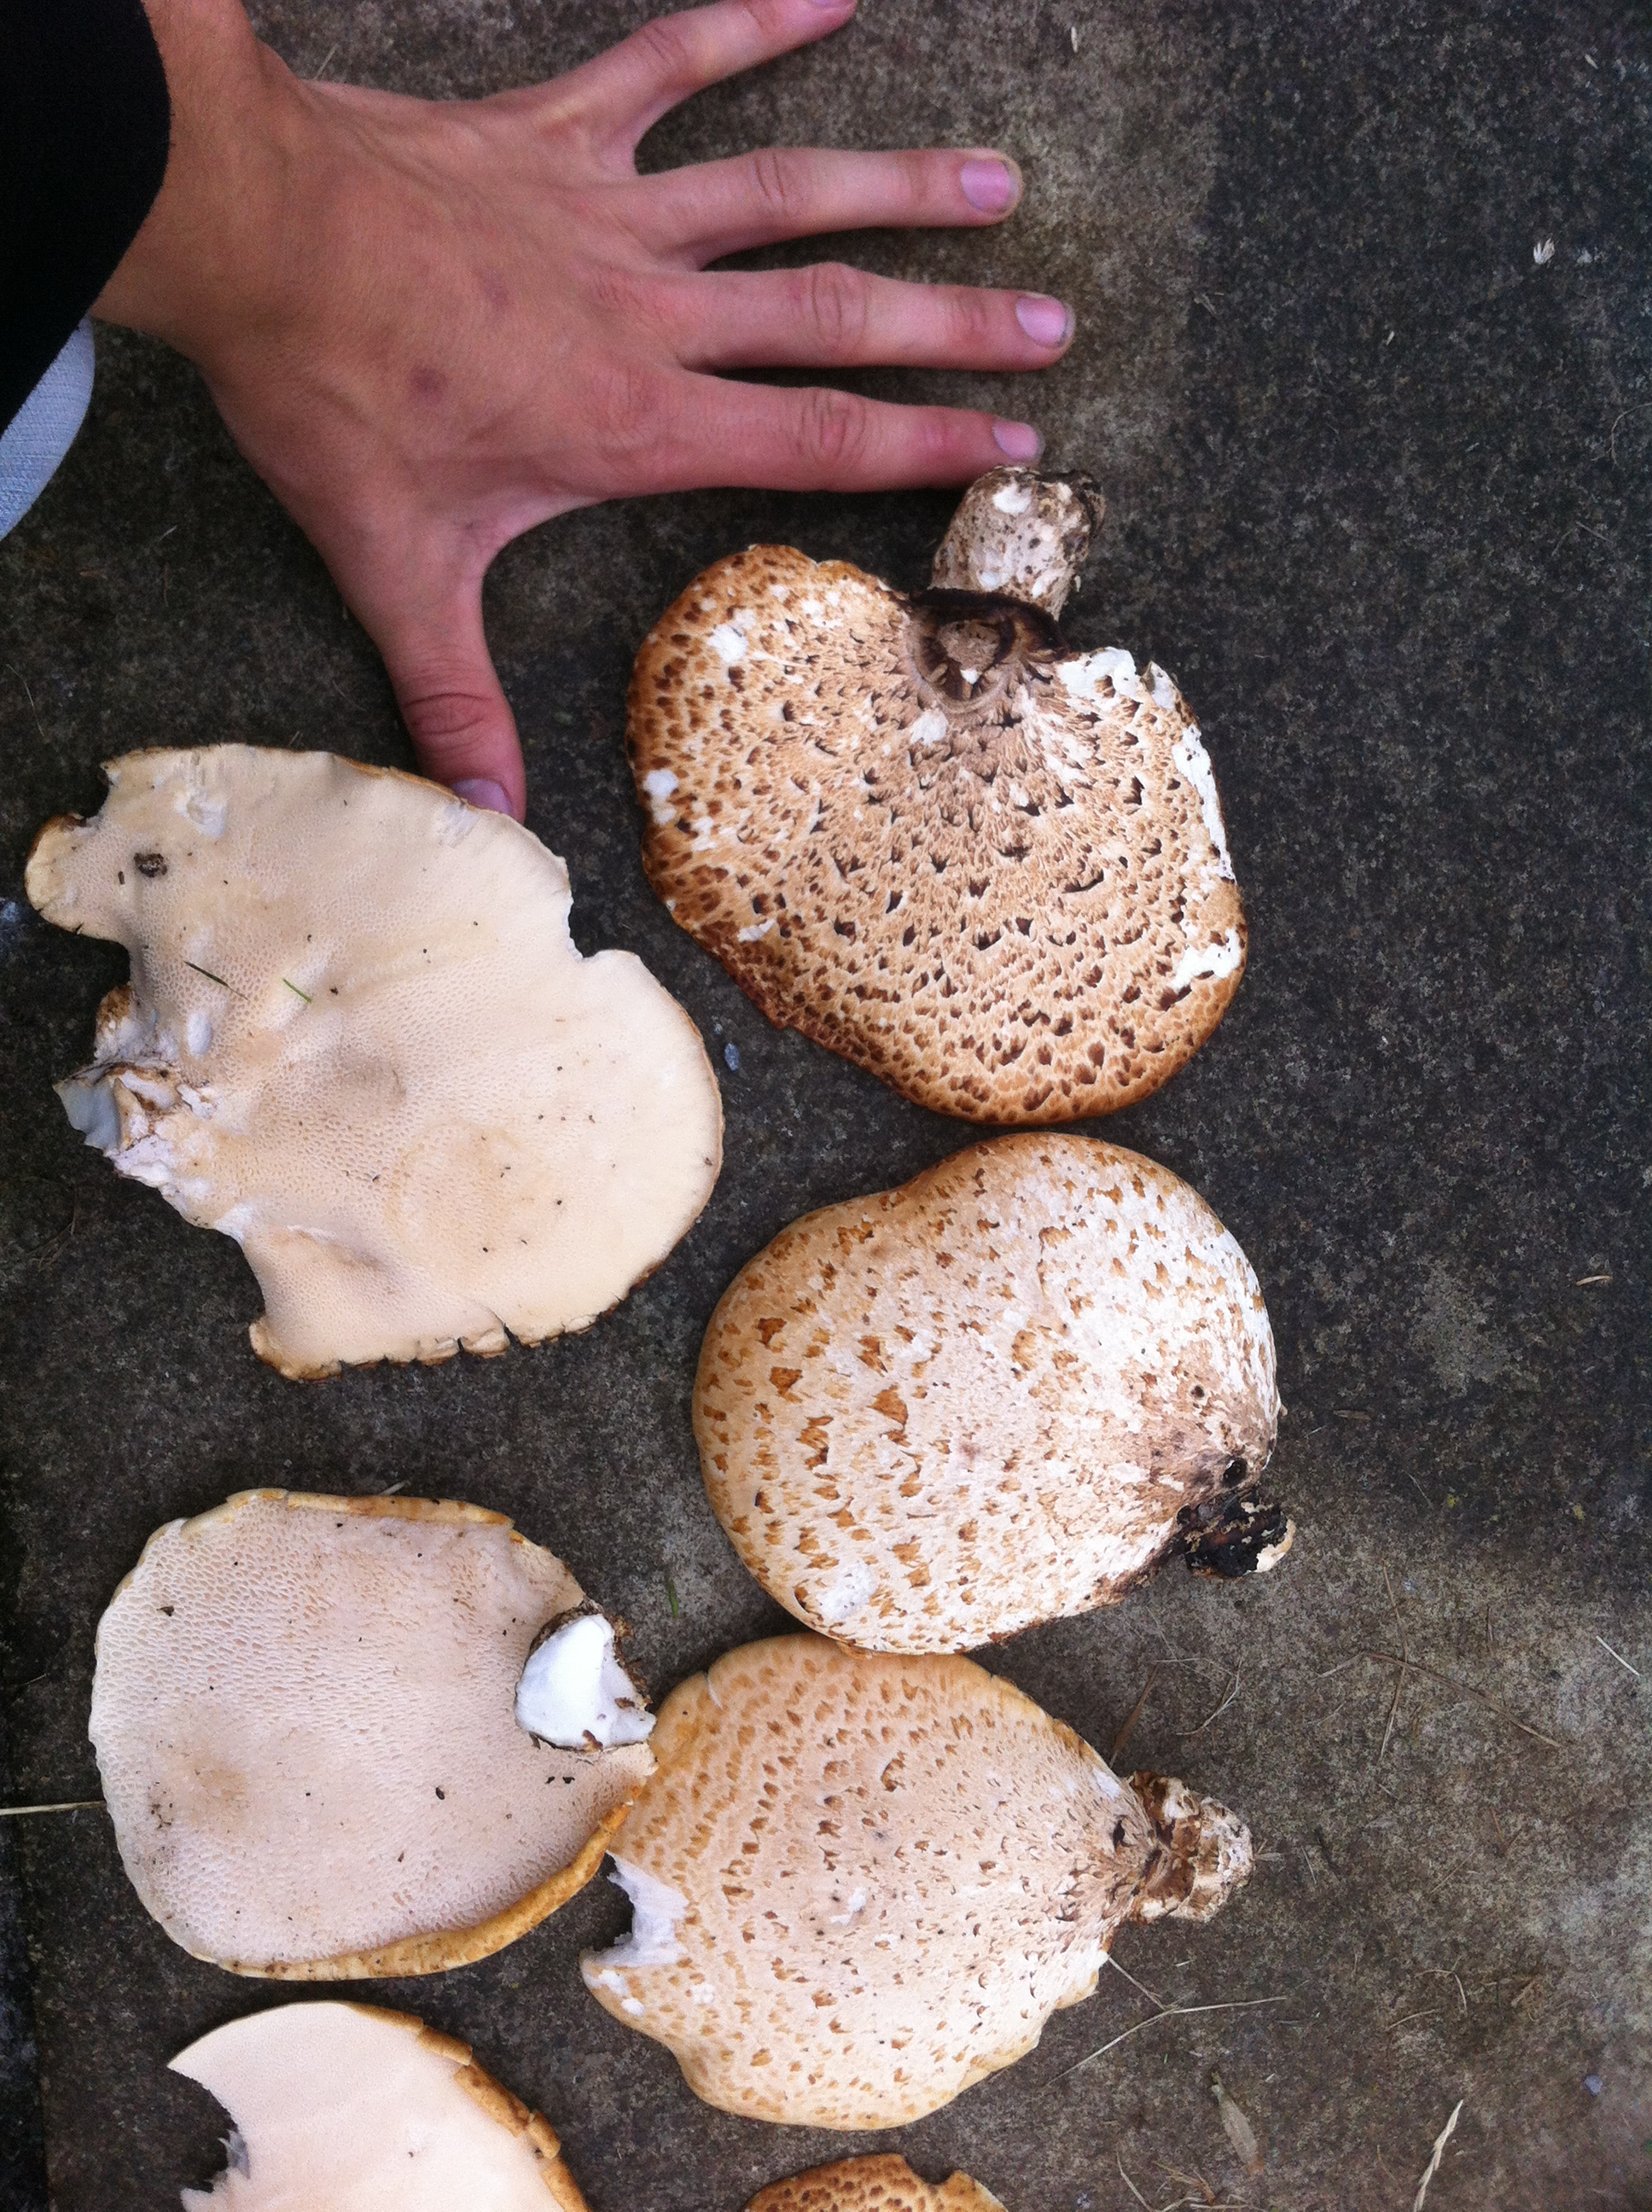 Dryad's saddle showing good size to eat